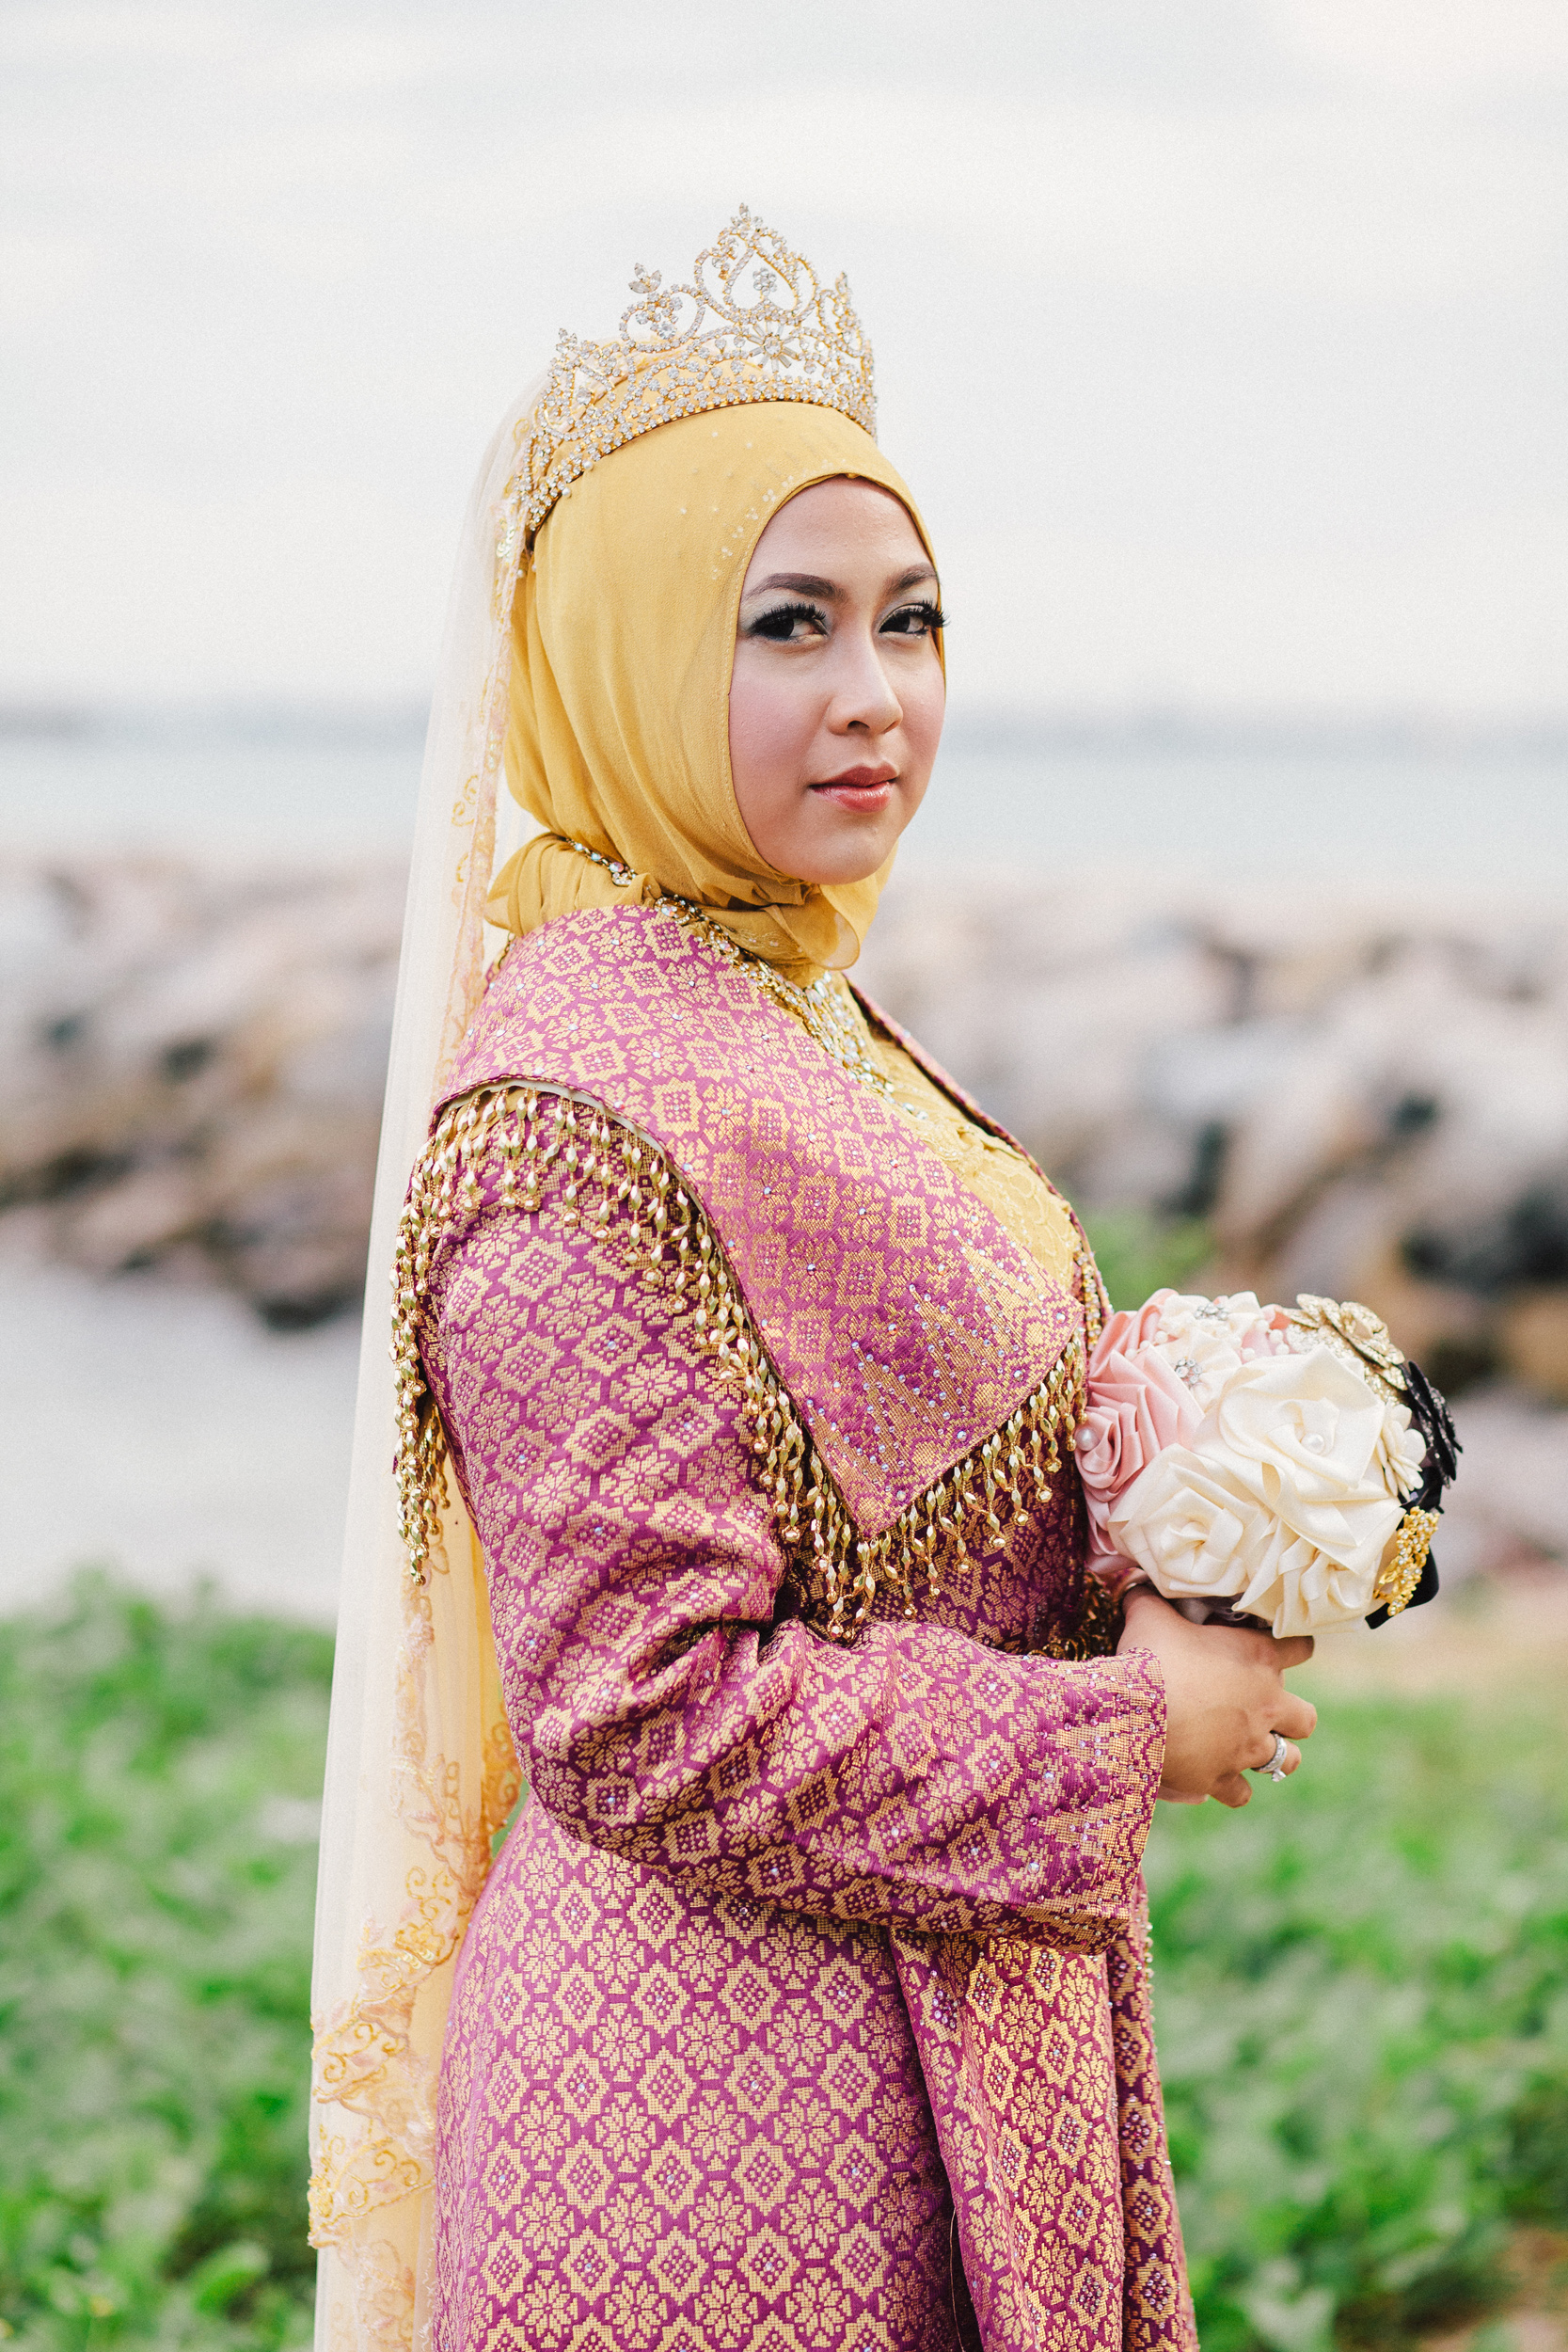 singapore-wedding-photographer-wemadethese-aisyah-helmi-51.jpg